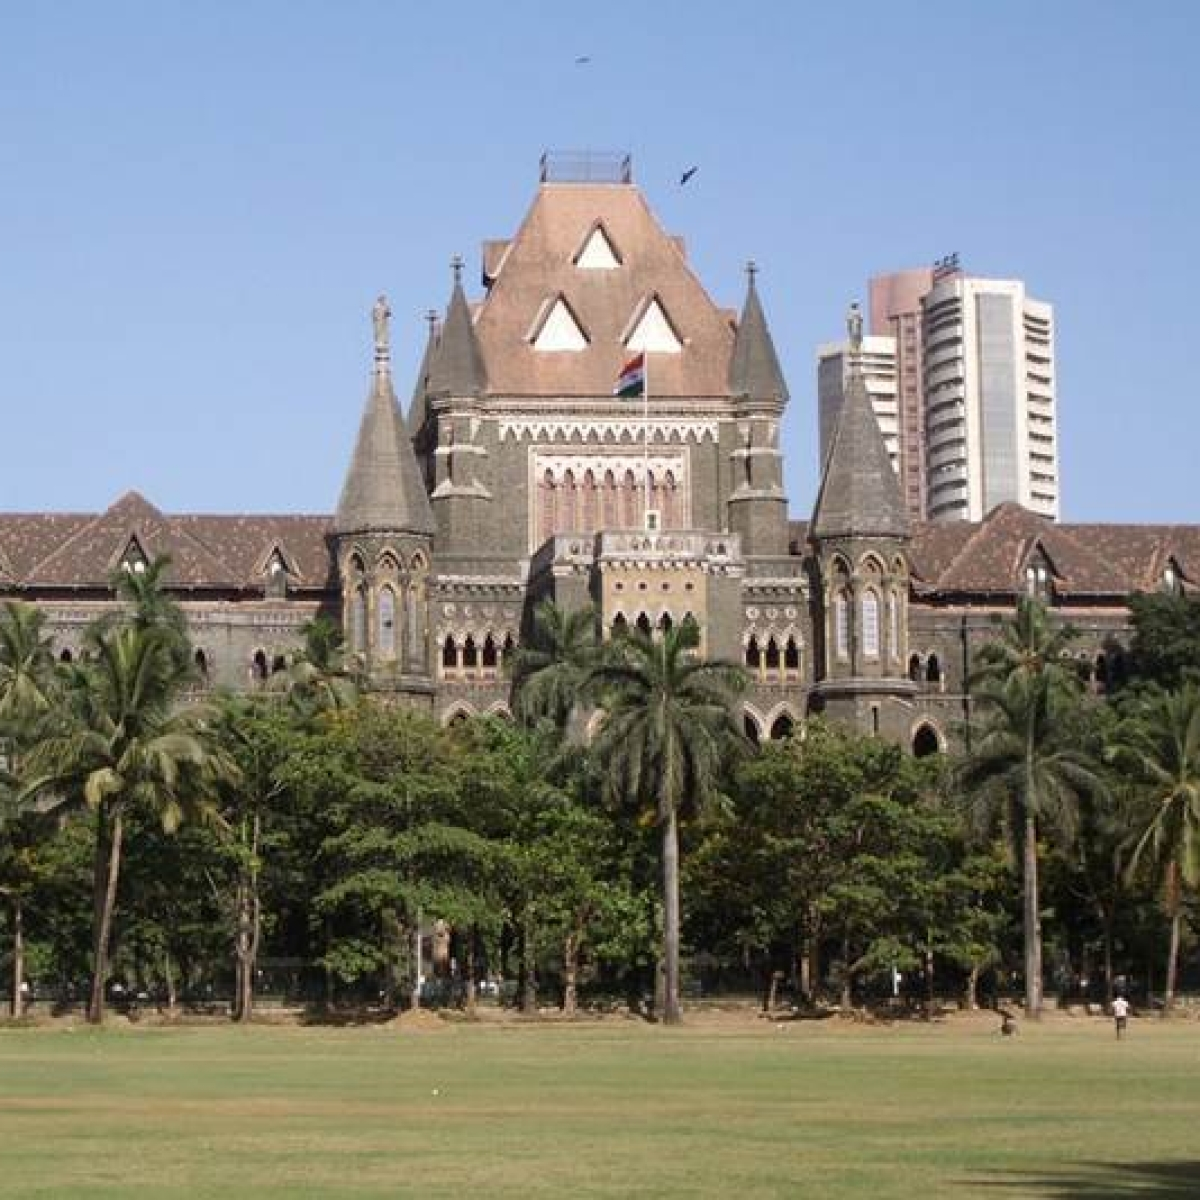 Bombay HC tells BMC to clear hurdles obstructing widening of roads